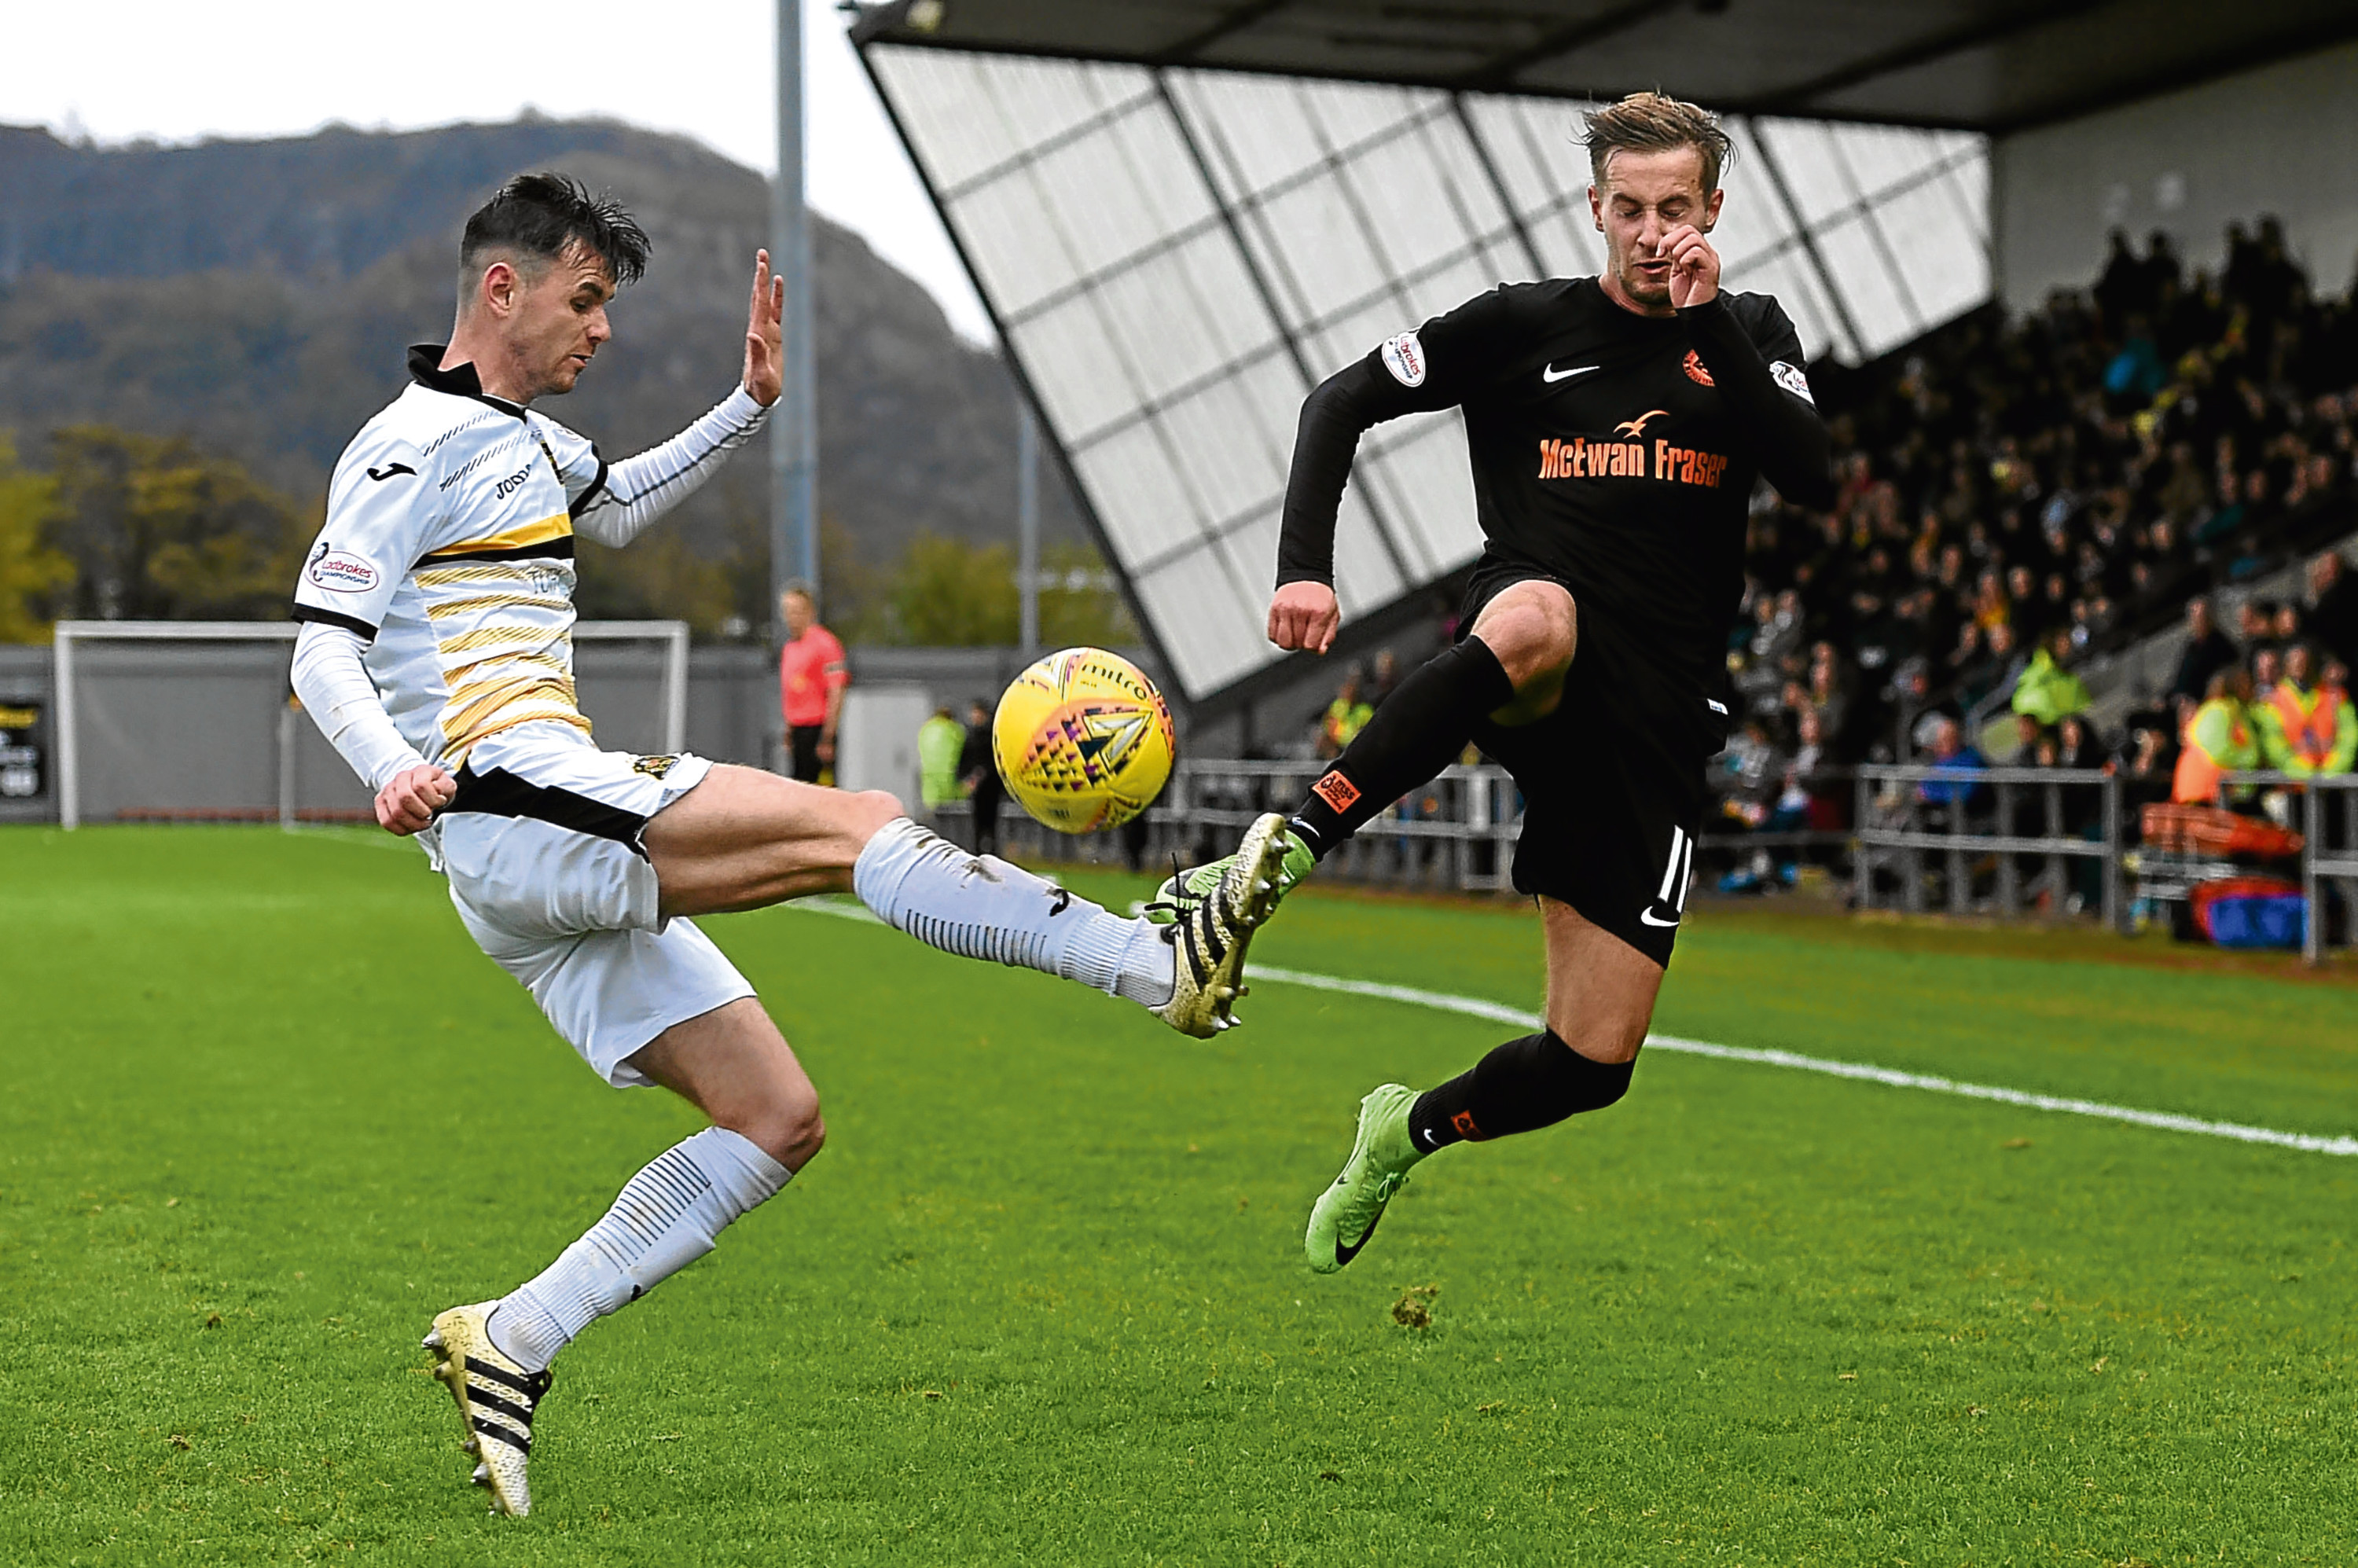 Billy King (right) — pictured in action against Dumbarton — is eager to avenge Dundee United's shock defeat to this weekend's visitors Livingston when the sides meet at Tannadice.